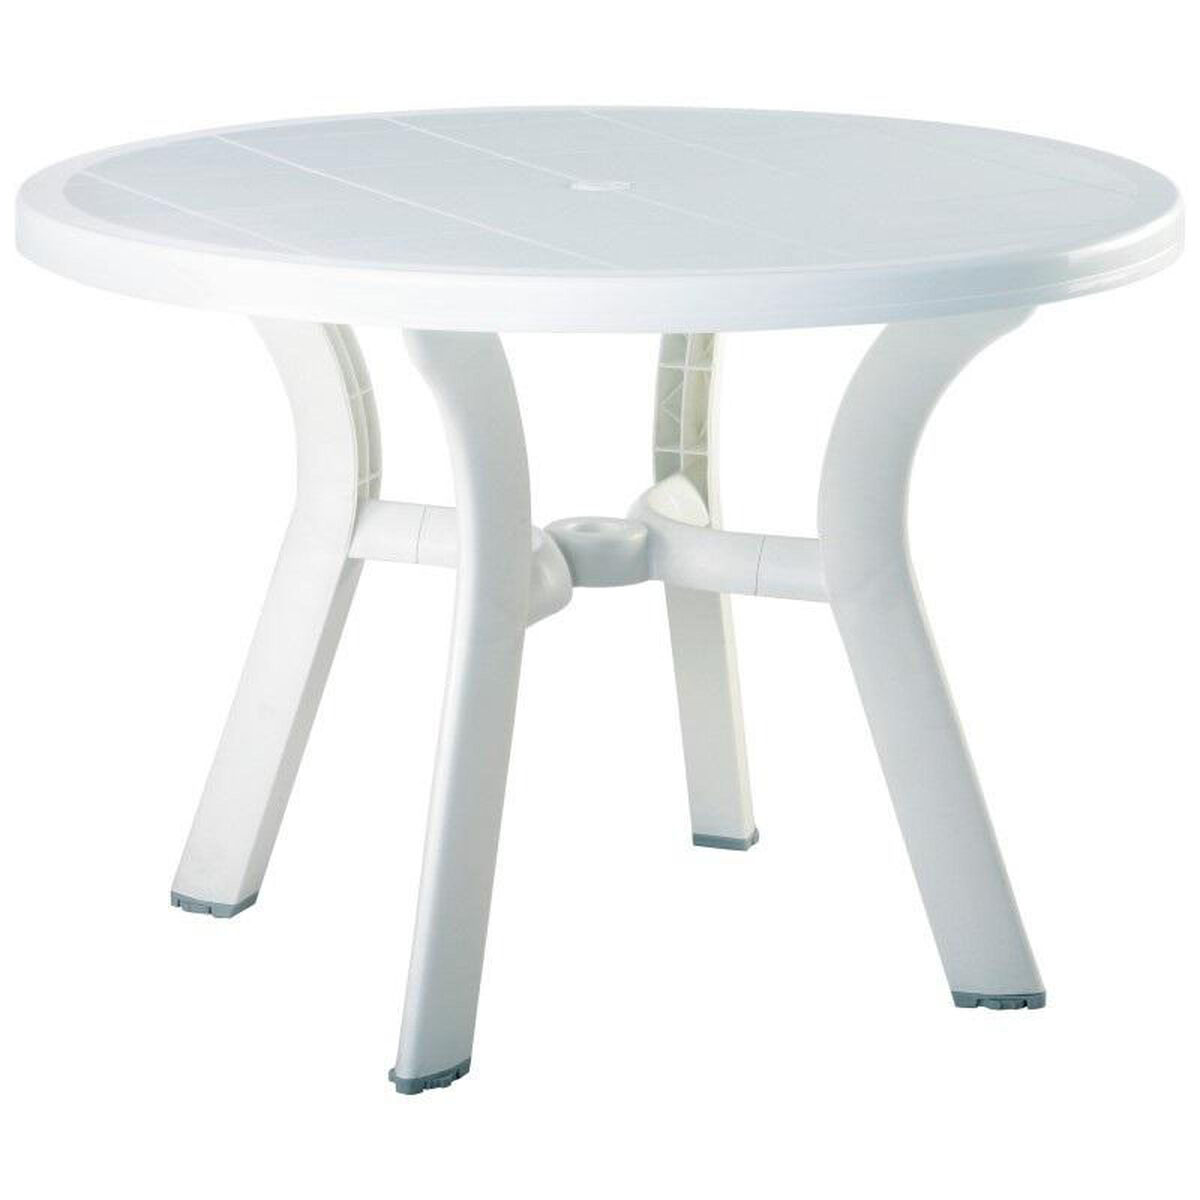 White Outdoor Dining Table ISPWHI Bizchaircom - White outdoor dining table with umbrella hole